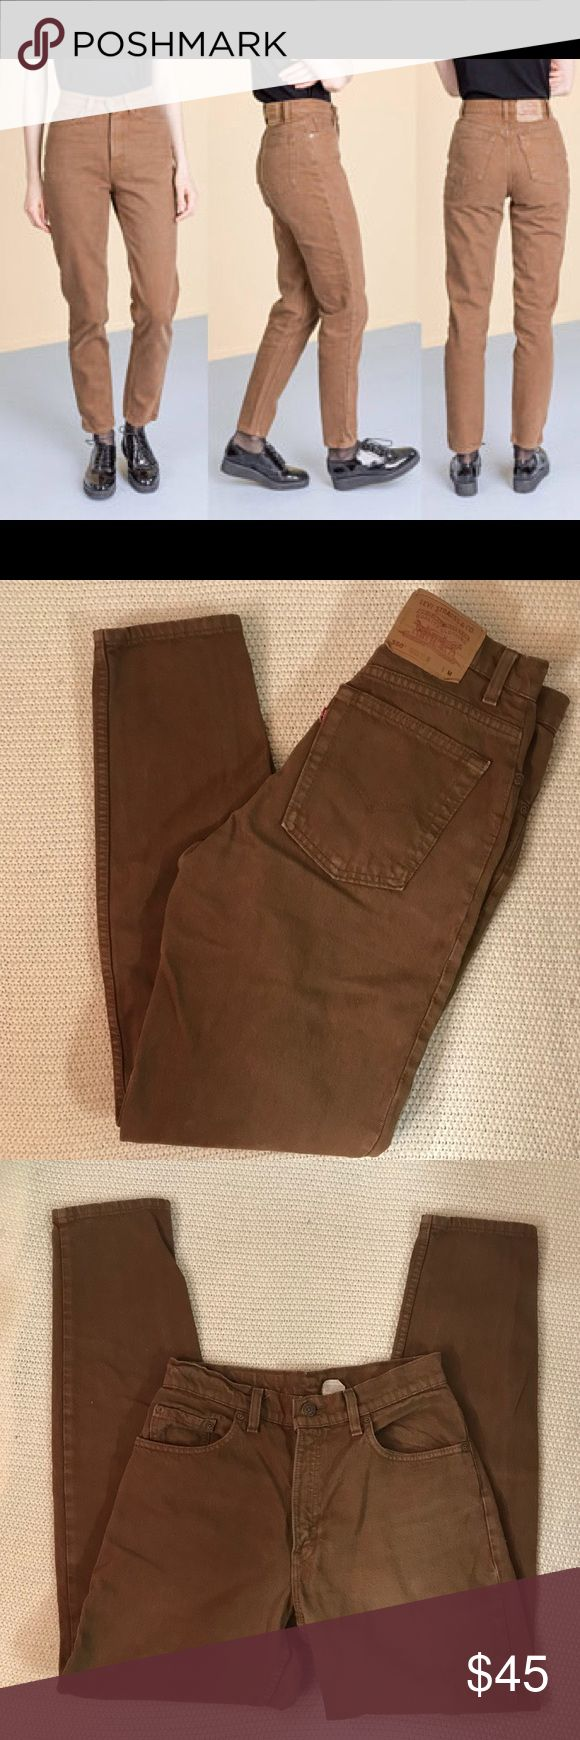 Brown Vintage Levi 550 Jeans Brown Vintage Levi 550 Jeans in waist size 27. Good vintage condition with no stains or holes. Measurements are as follows: Waist: 27 inches  Inseam: approx 31 inches  Rise: 11 inches Levi's Jeans